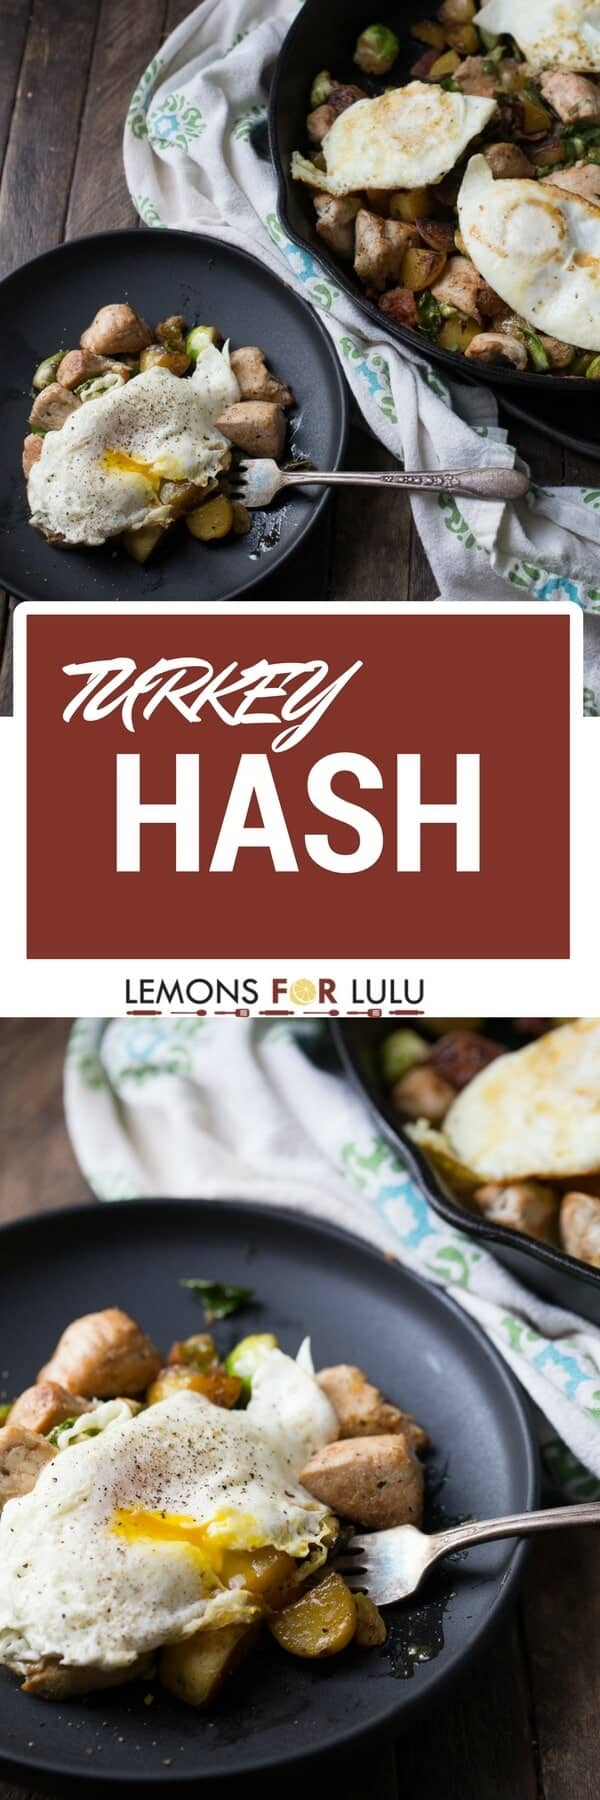 Turkey hash is one of those dishes that can be made with anything you have in the fridge! It's easy and versatile; it takes so good!